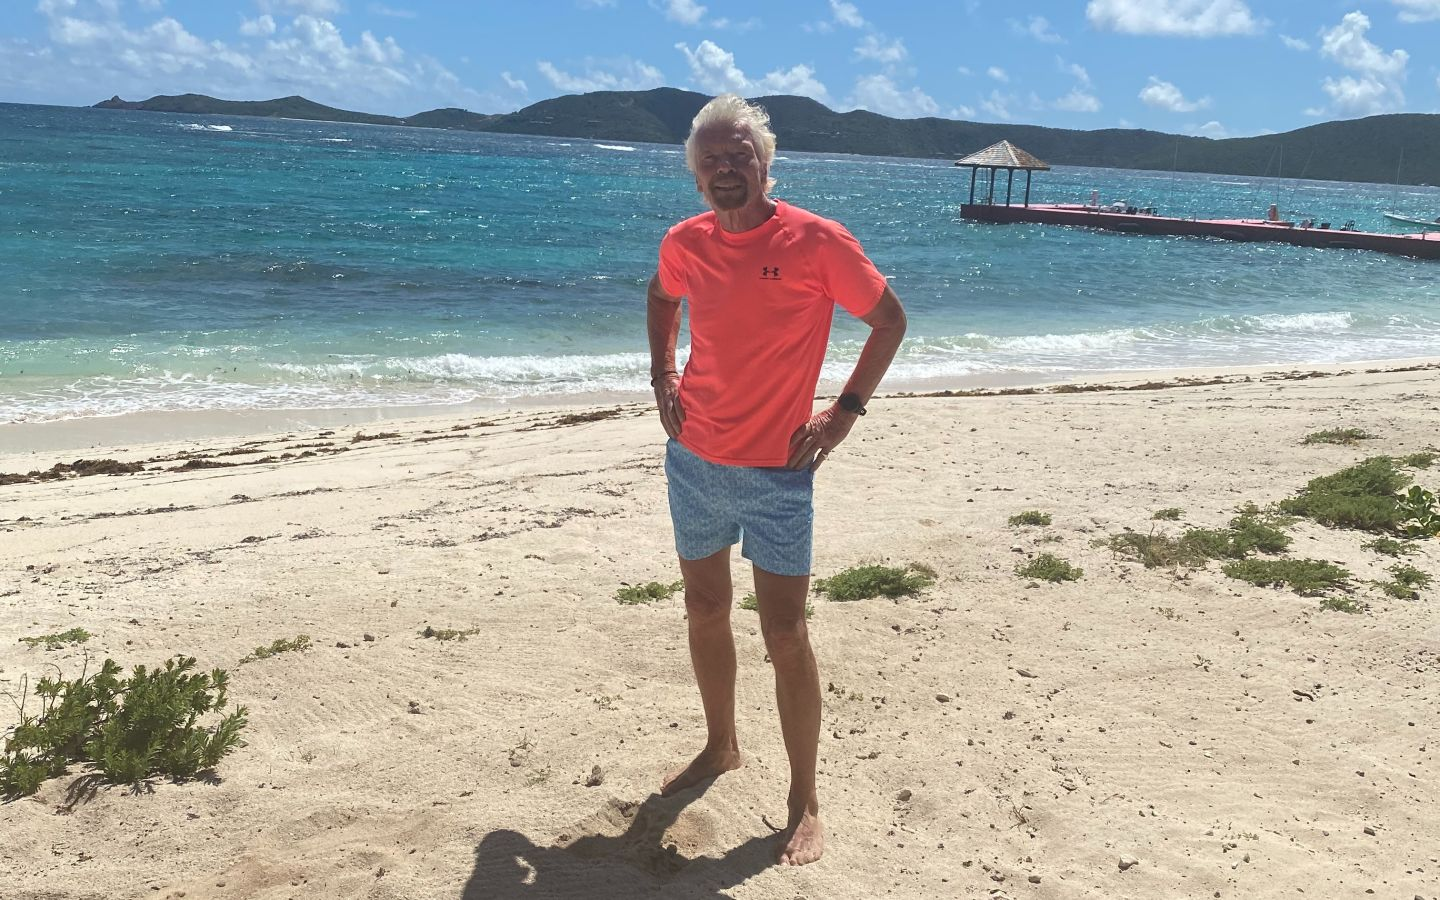 Richard Branson standing on the beach about to go for a swim